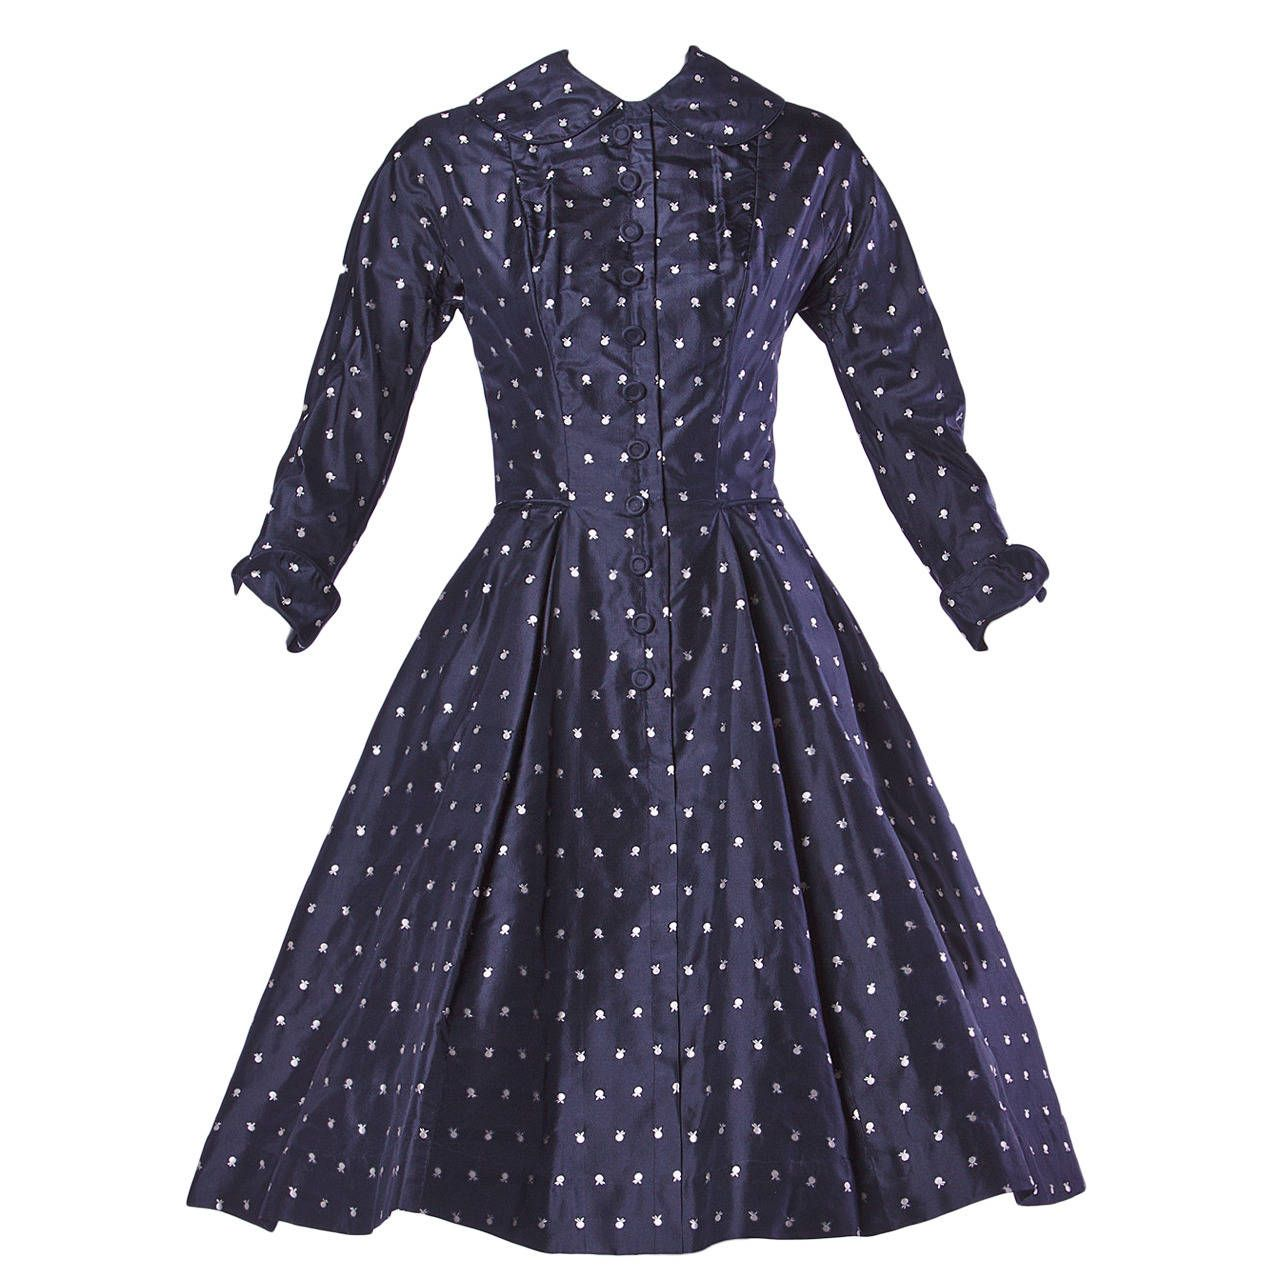 Ceil Chapman Vintage 1950s 50s Fruit Print Navy Silk Dress with Box ...